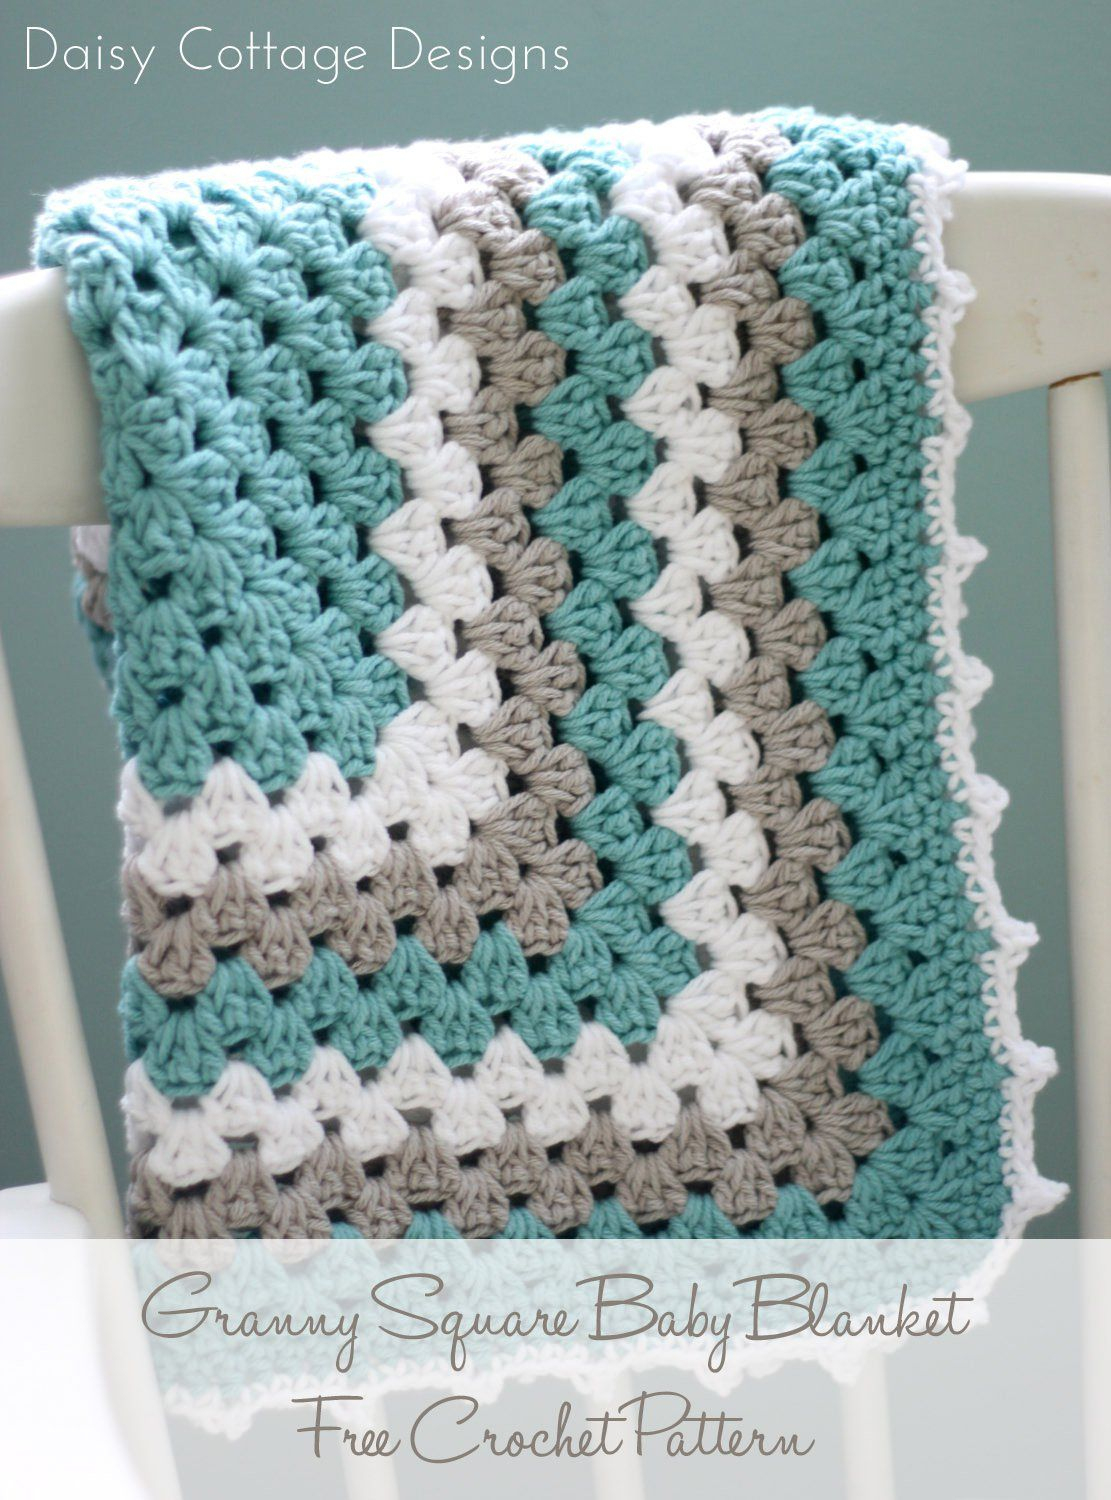 Granny Square Pattern - A Free Crochet Pattern | Best Of Daisy - Free Printable Crochet Granny Square Patterns